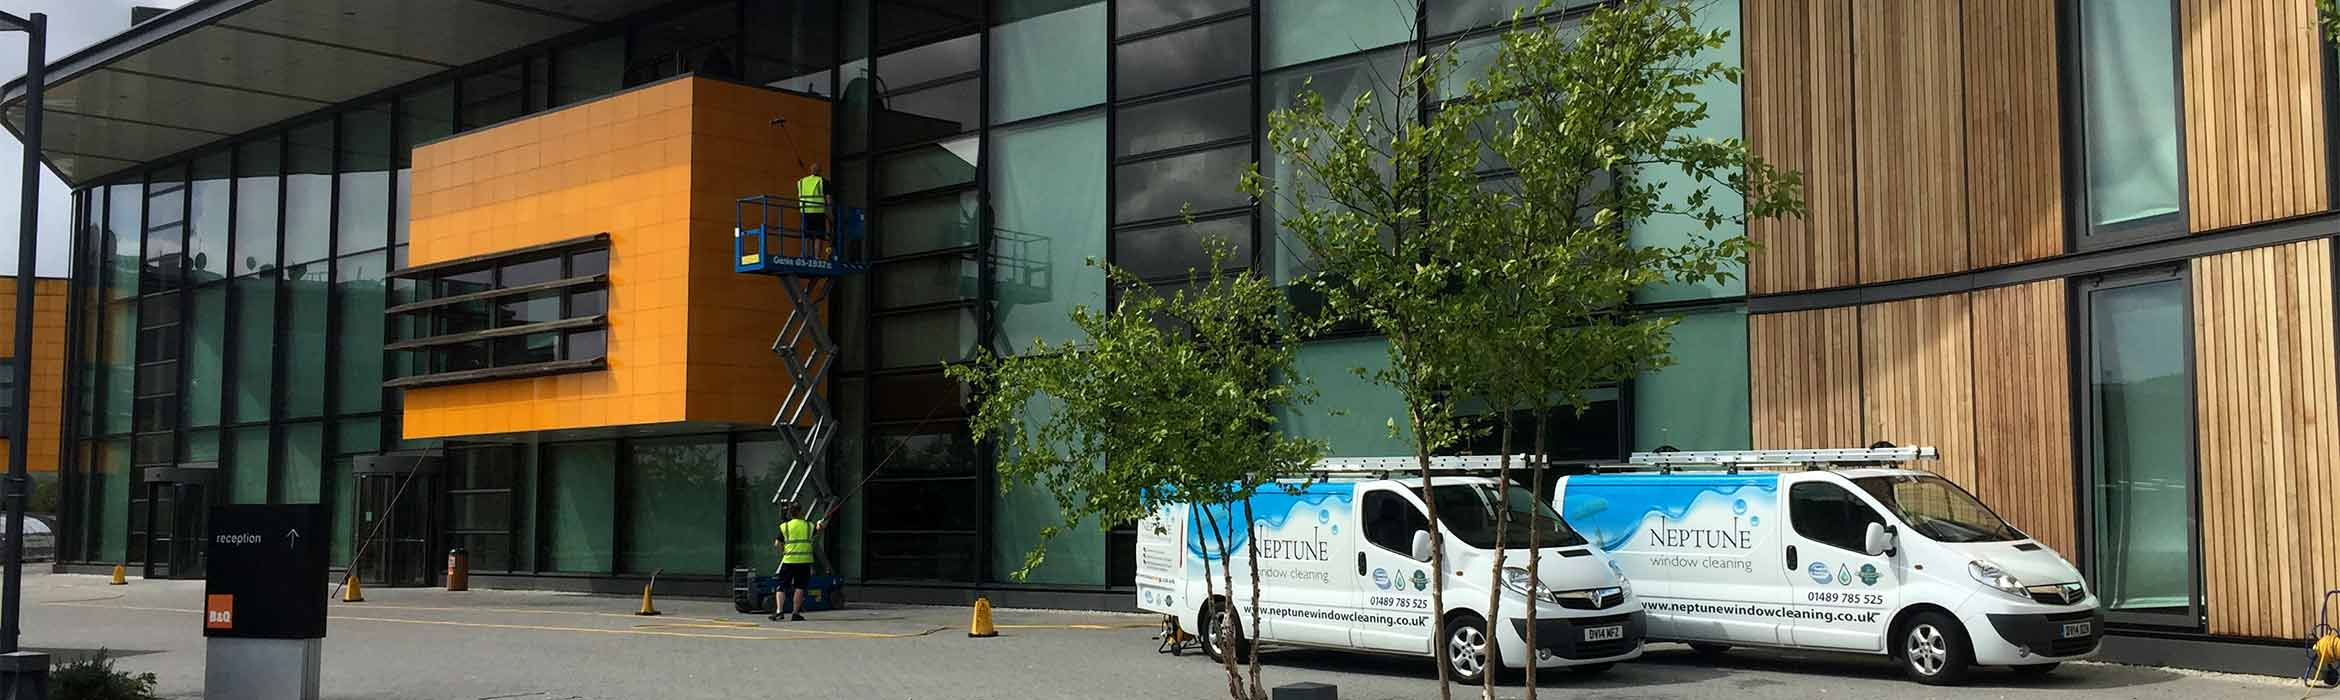 Front elevation of B&Q Head Office with two Neptune Window Cleaning vans in operation with window cleaner working from a scissor lift platform.